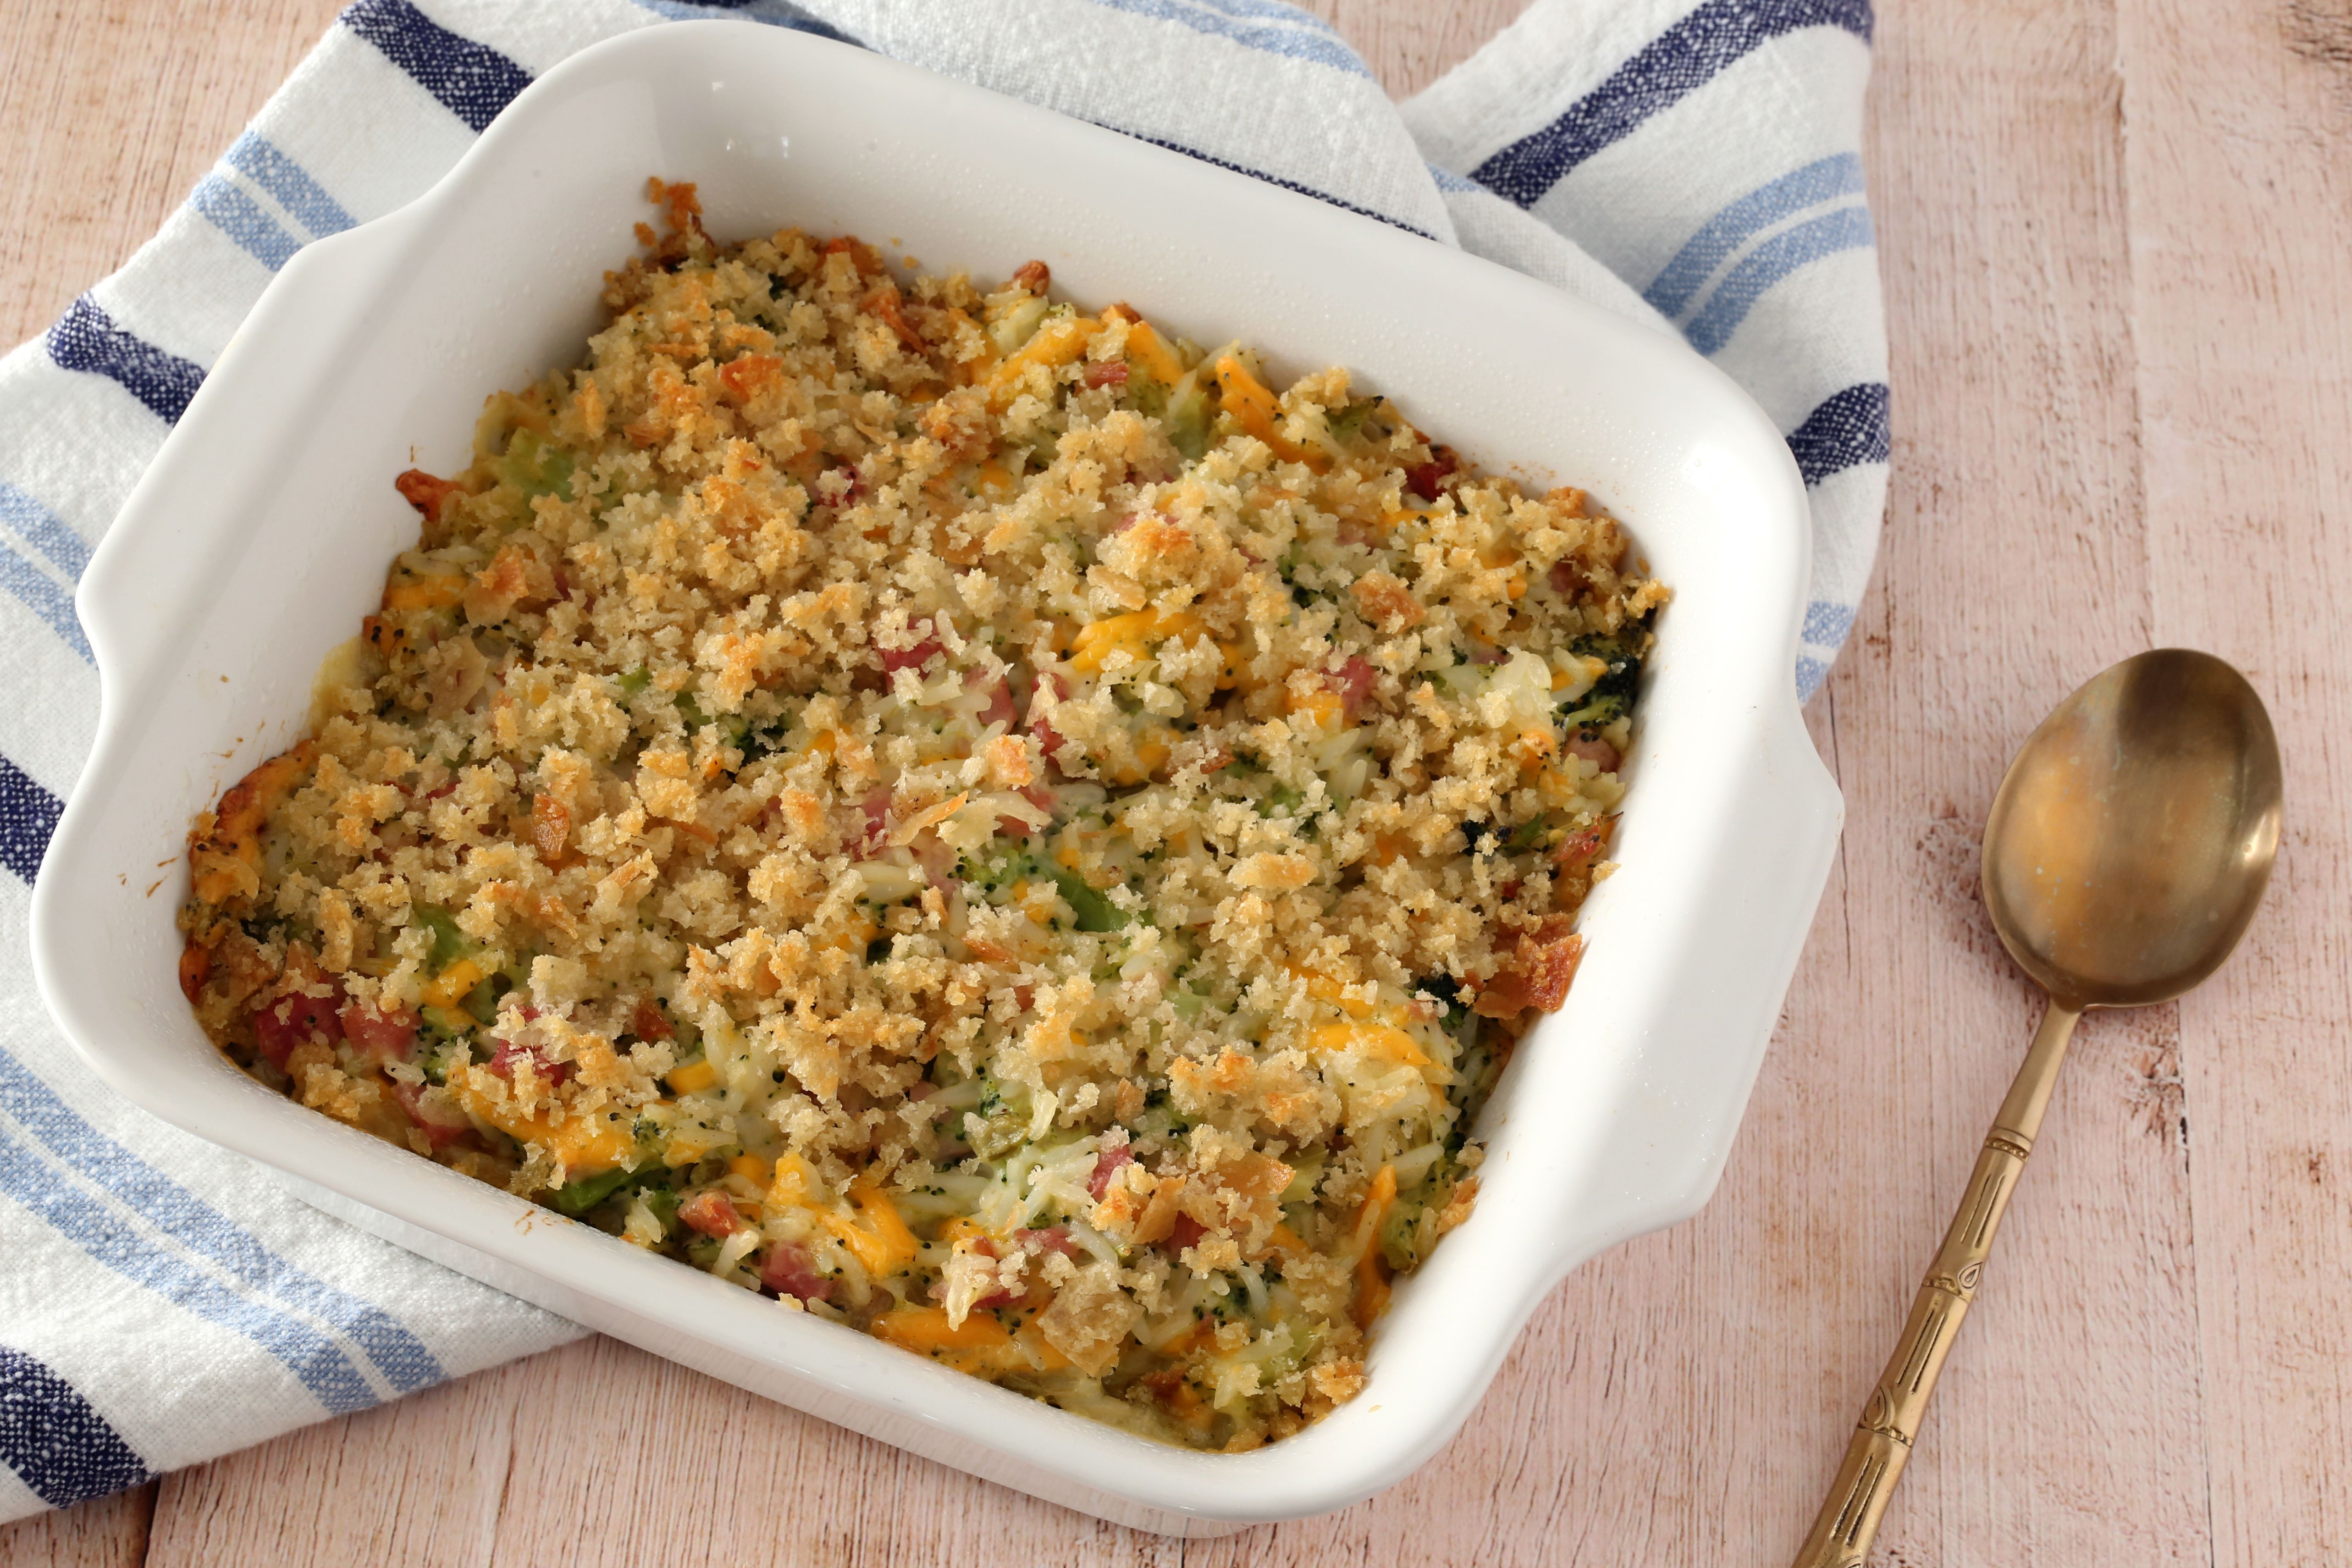 Broccoli, rice, and ham casserole from the oven.